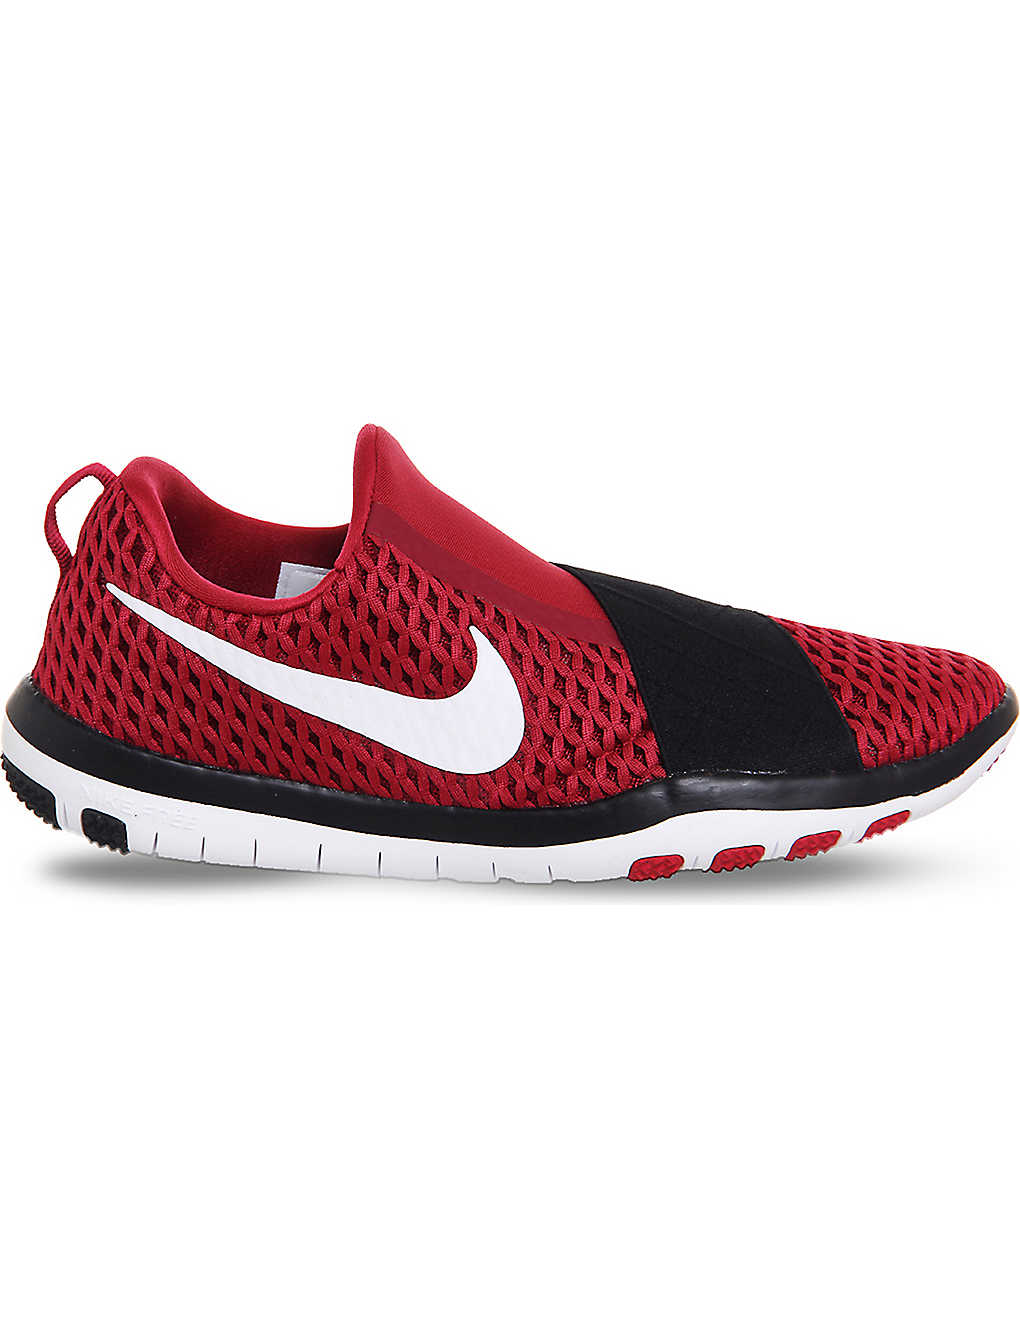 on sale 5a14a 3f6ad NIKE Free connect mesh slip-on trainers